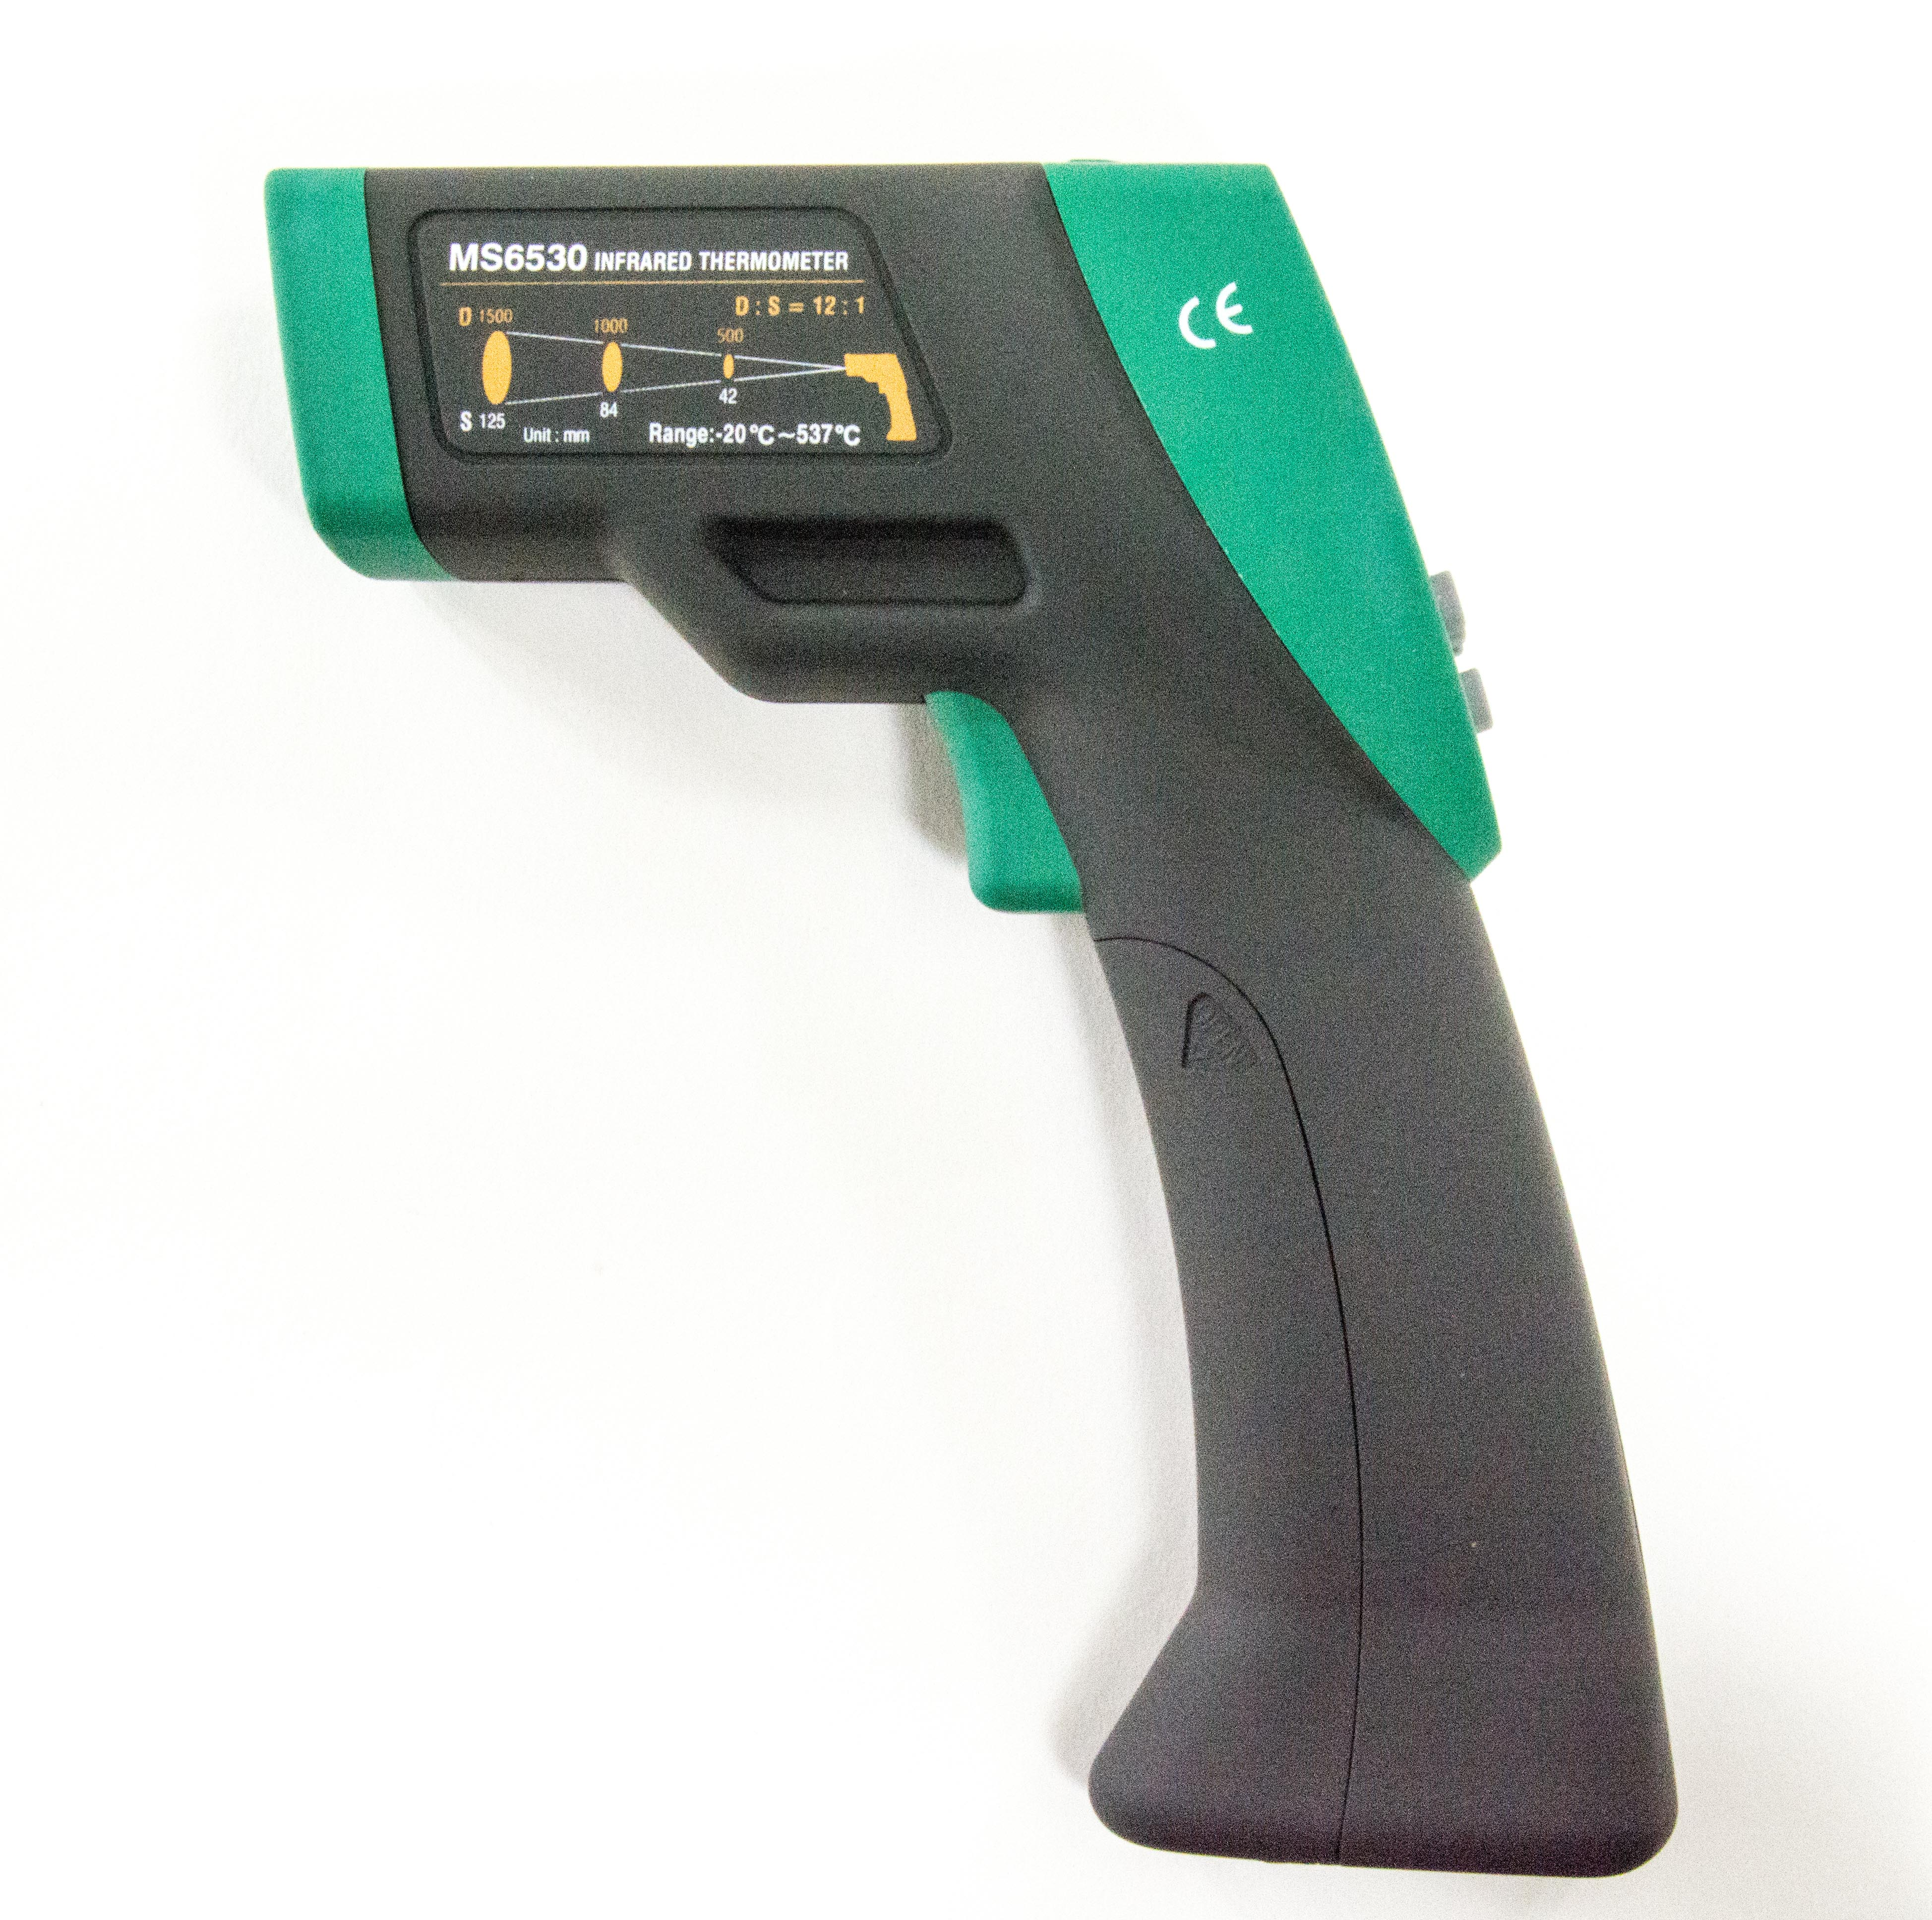 Mastech MS6530 Infrared Thermometer (IRT), 12:1 (D:S), -2...